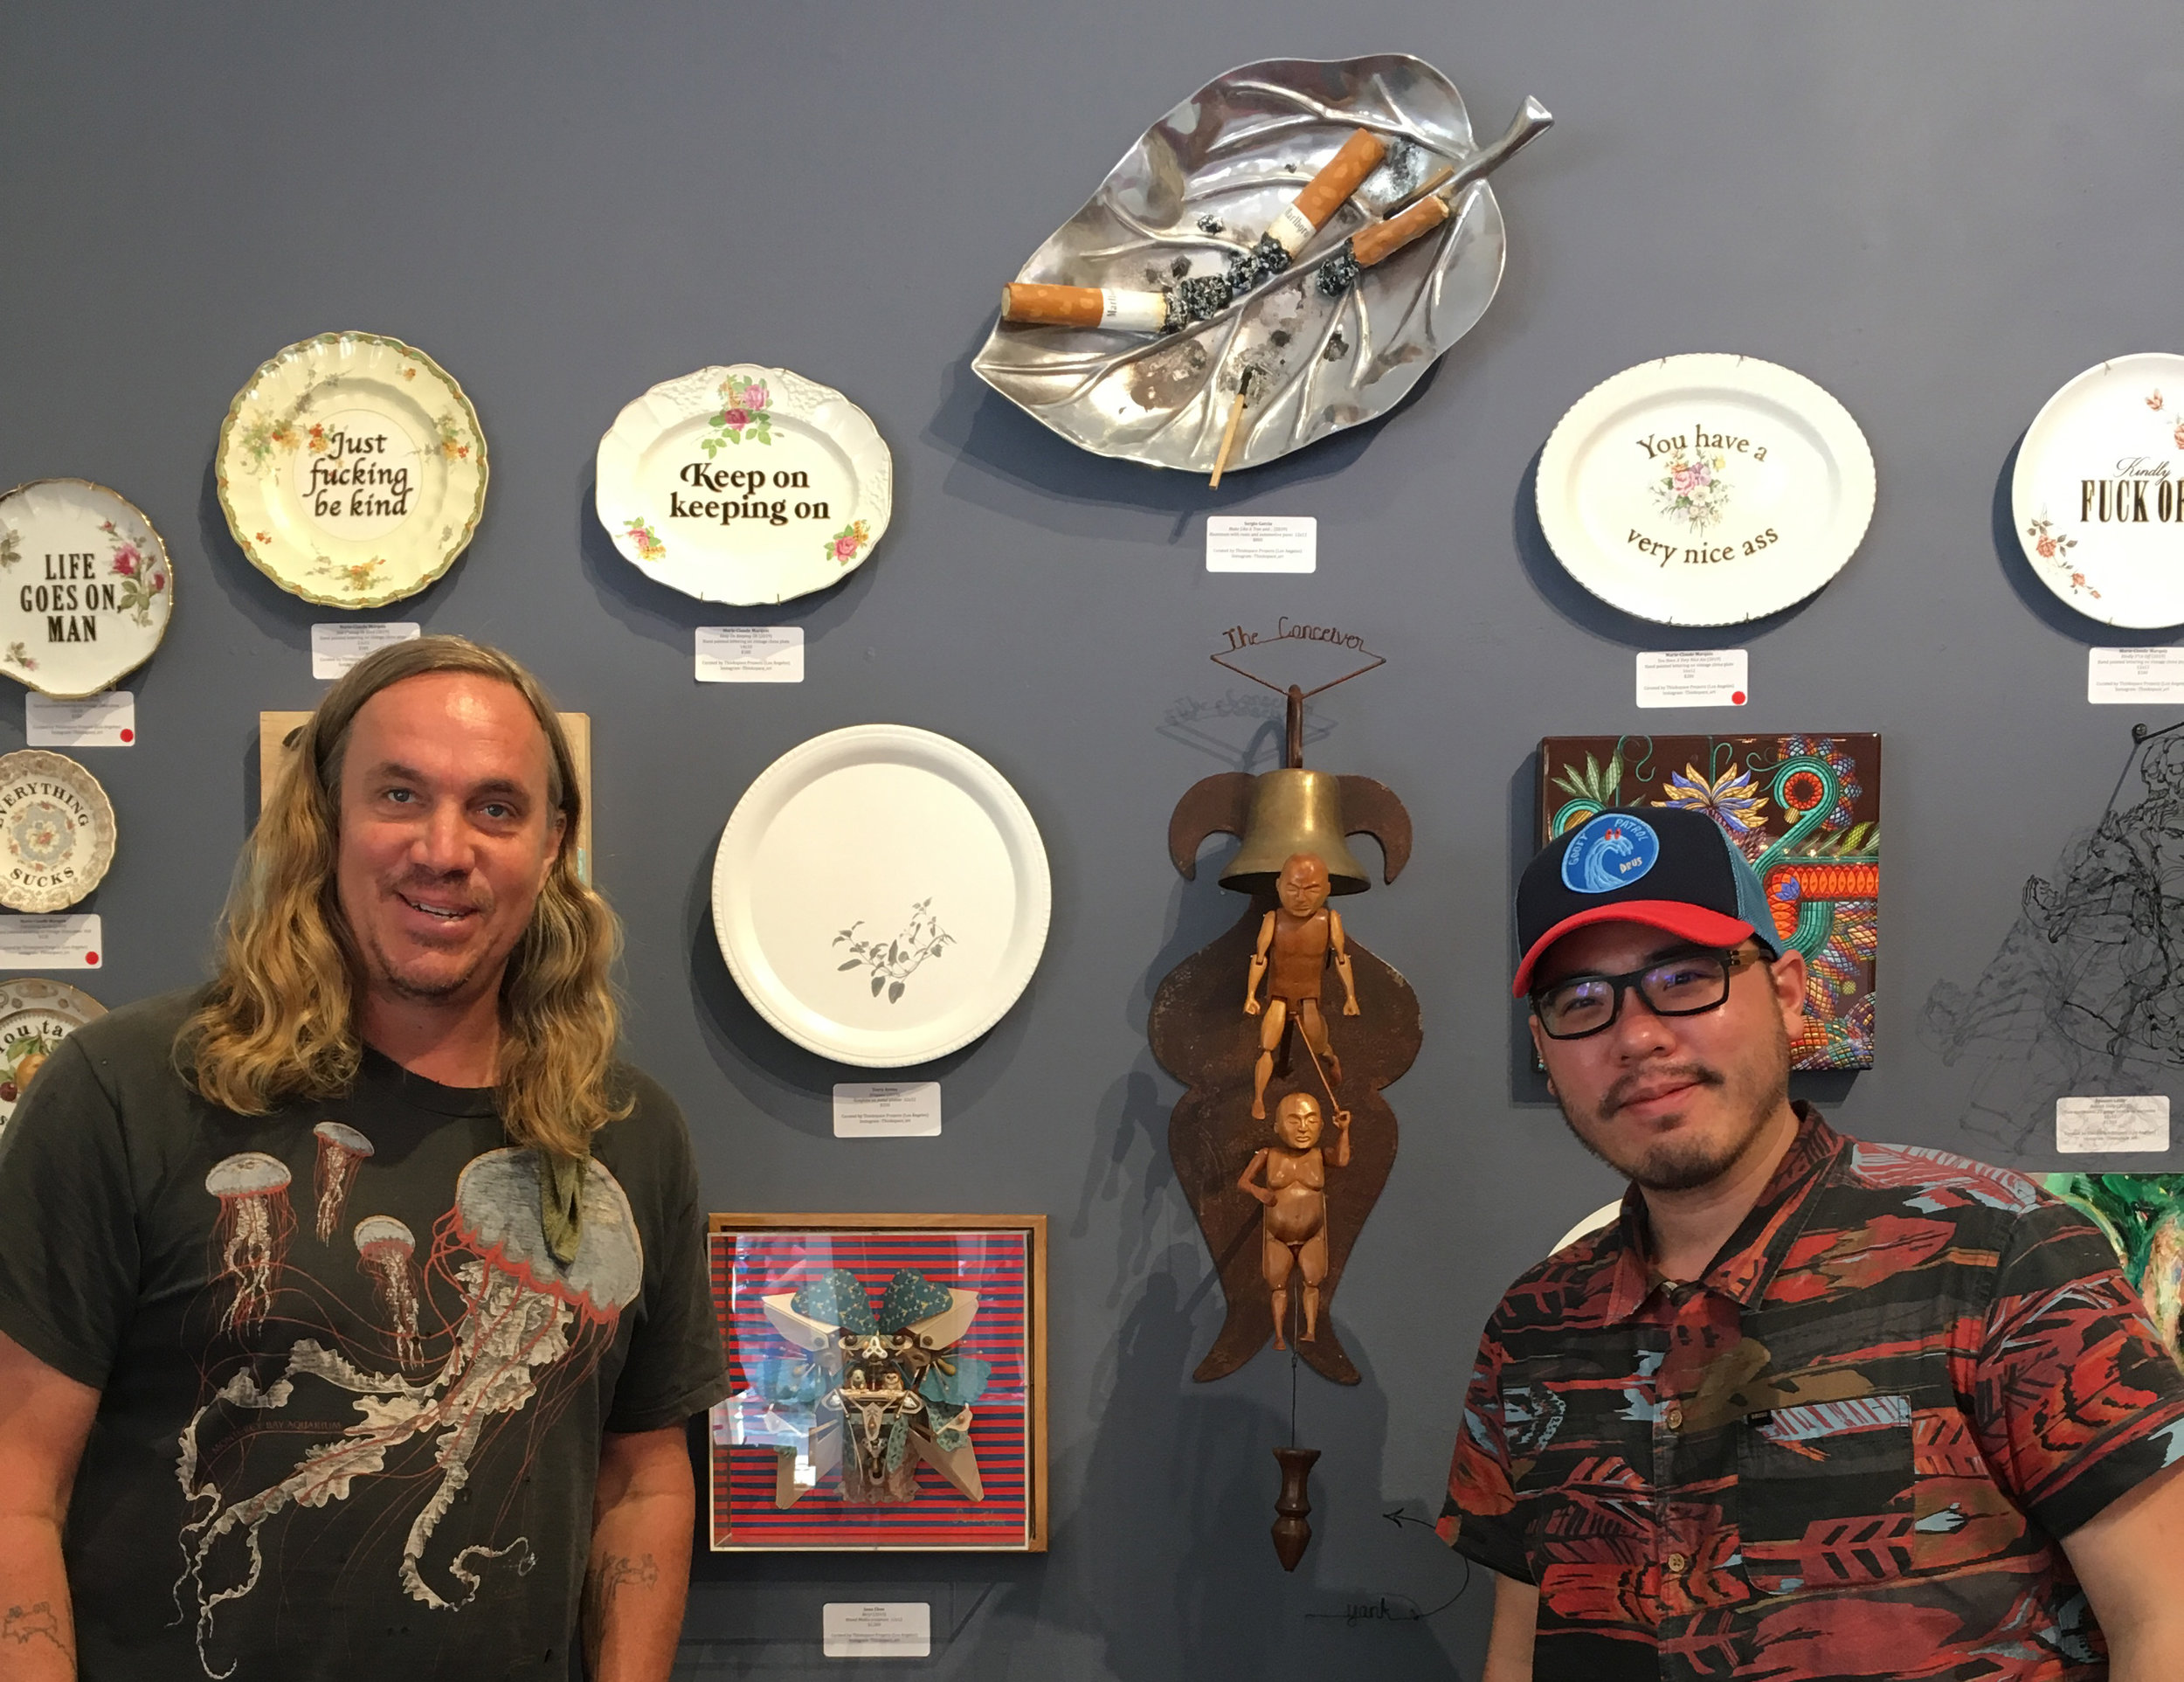 Exhibit alongside with my talented artist friend  Spenser Little  Check out his intricate work.